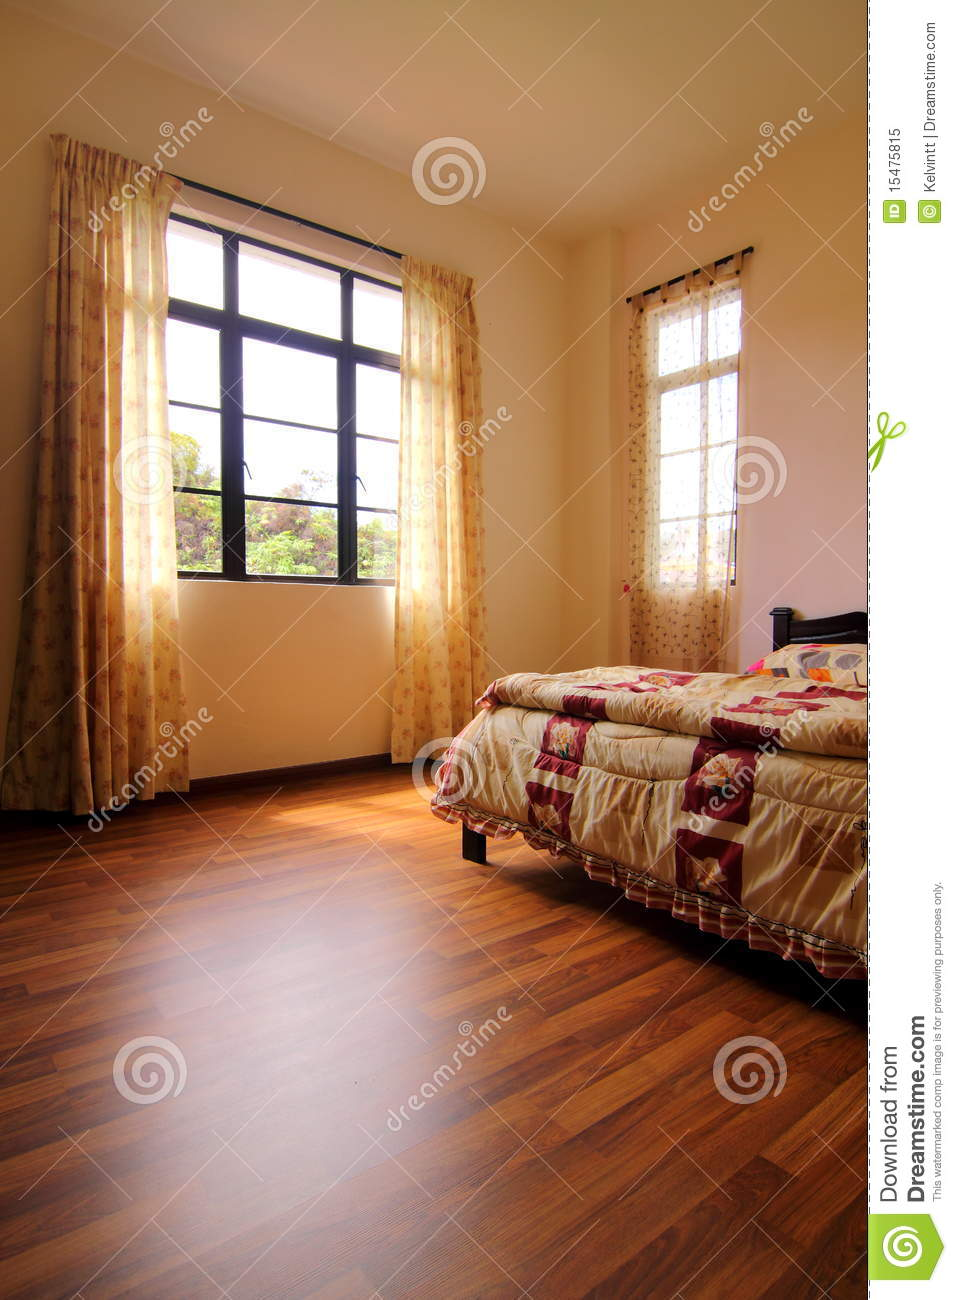 Bedroom With Hardwood Flooring Stock Image Image Of Feng Blanket 15475815